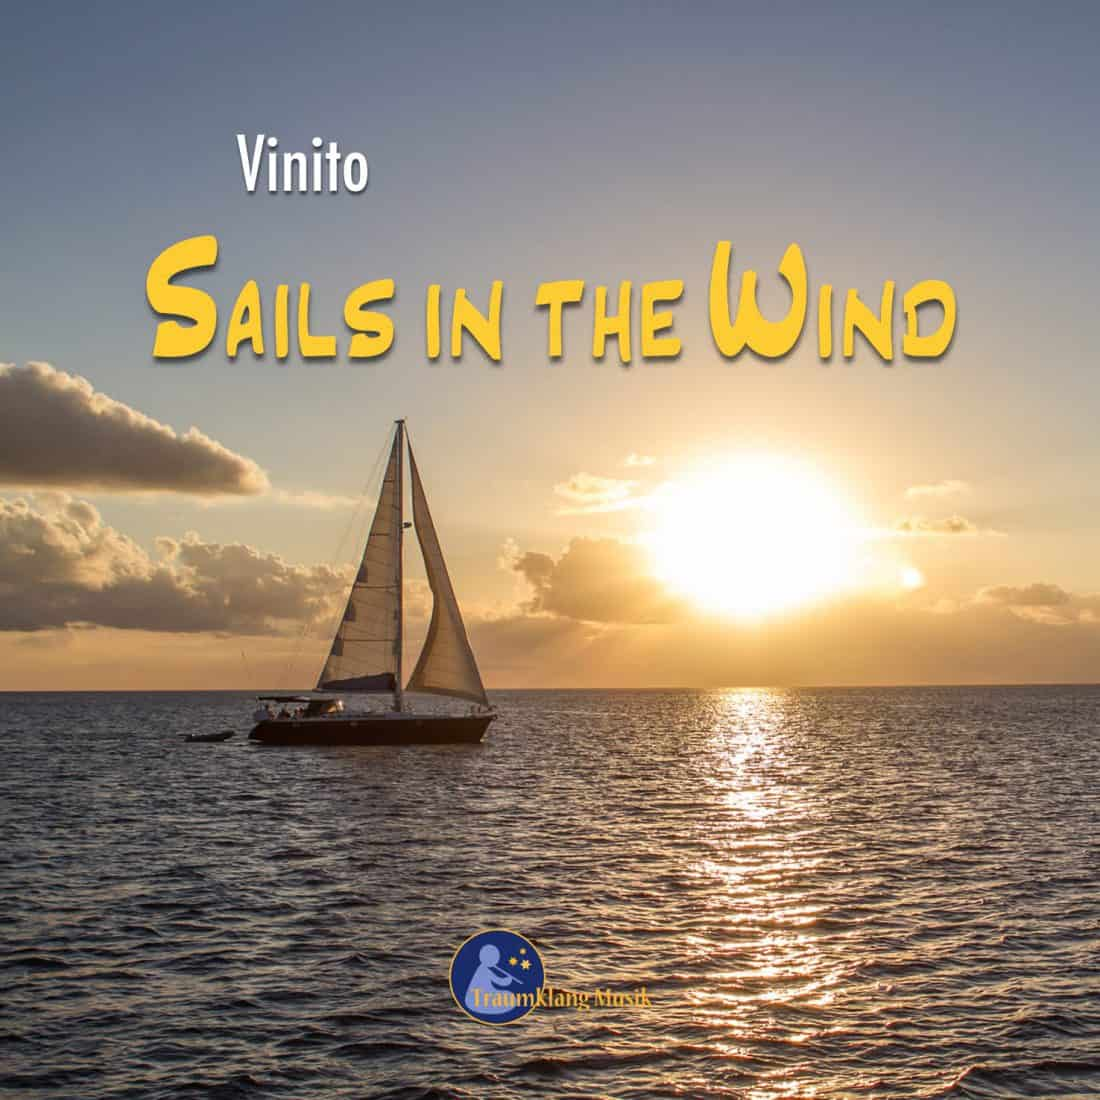 Sails in the Wind: Entspannungsmusik von Vinito